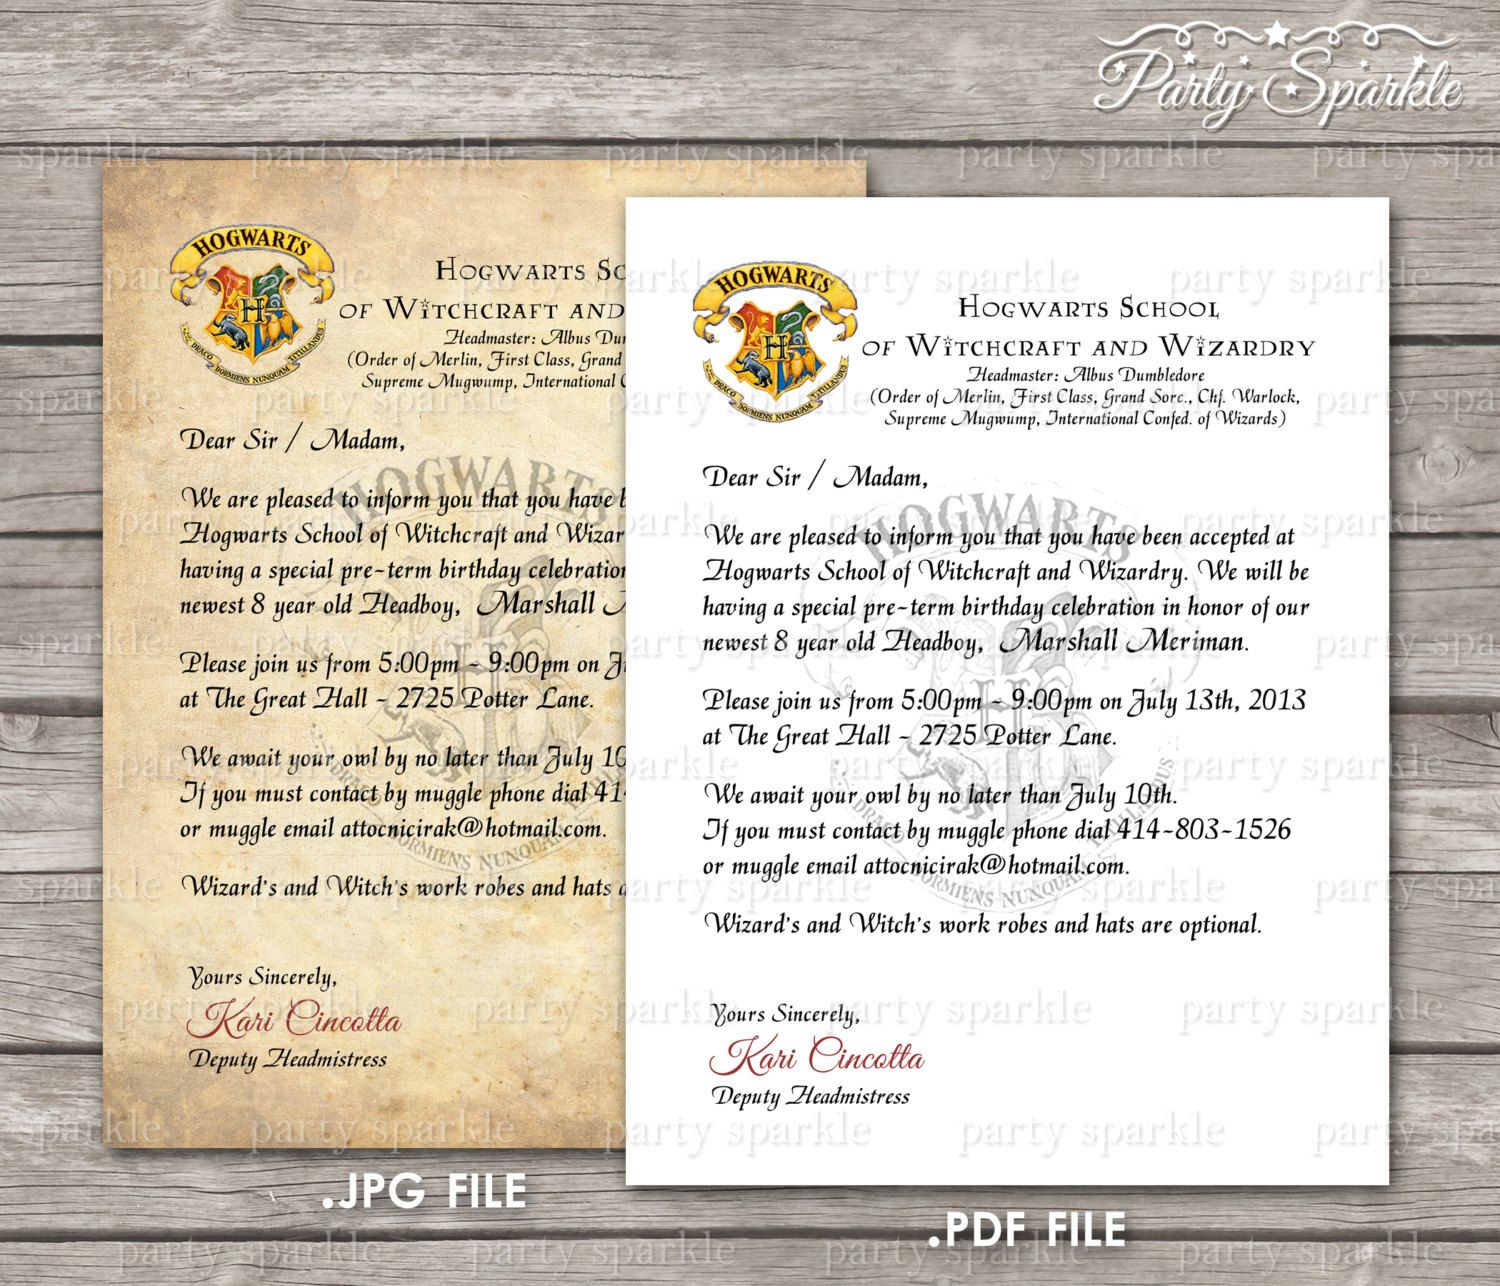 Printable hogwarts acceptance letter invitation by partysparkle printable hogwarts acceptance letter invitation by partysparkle spiritdancerdesigns Choice Image